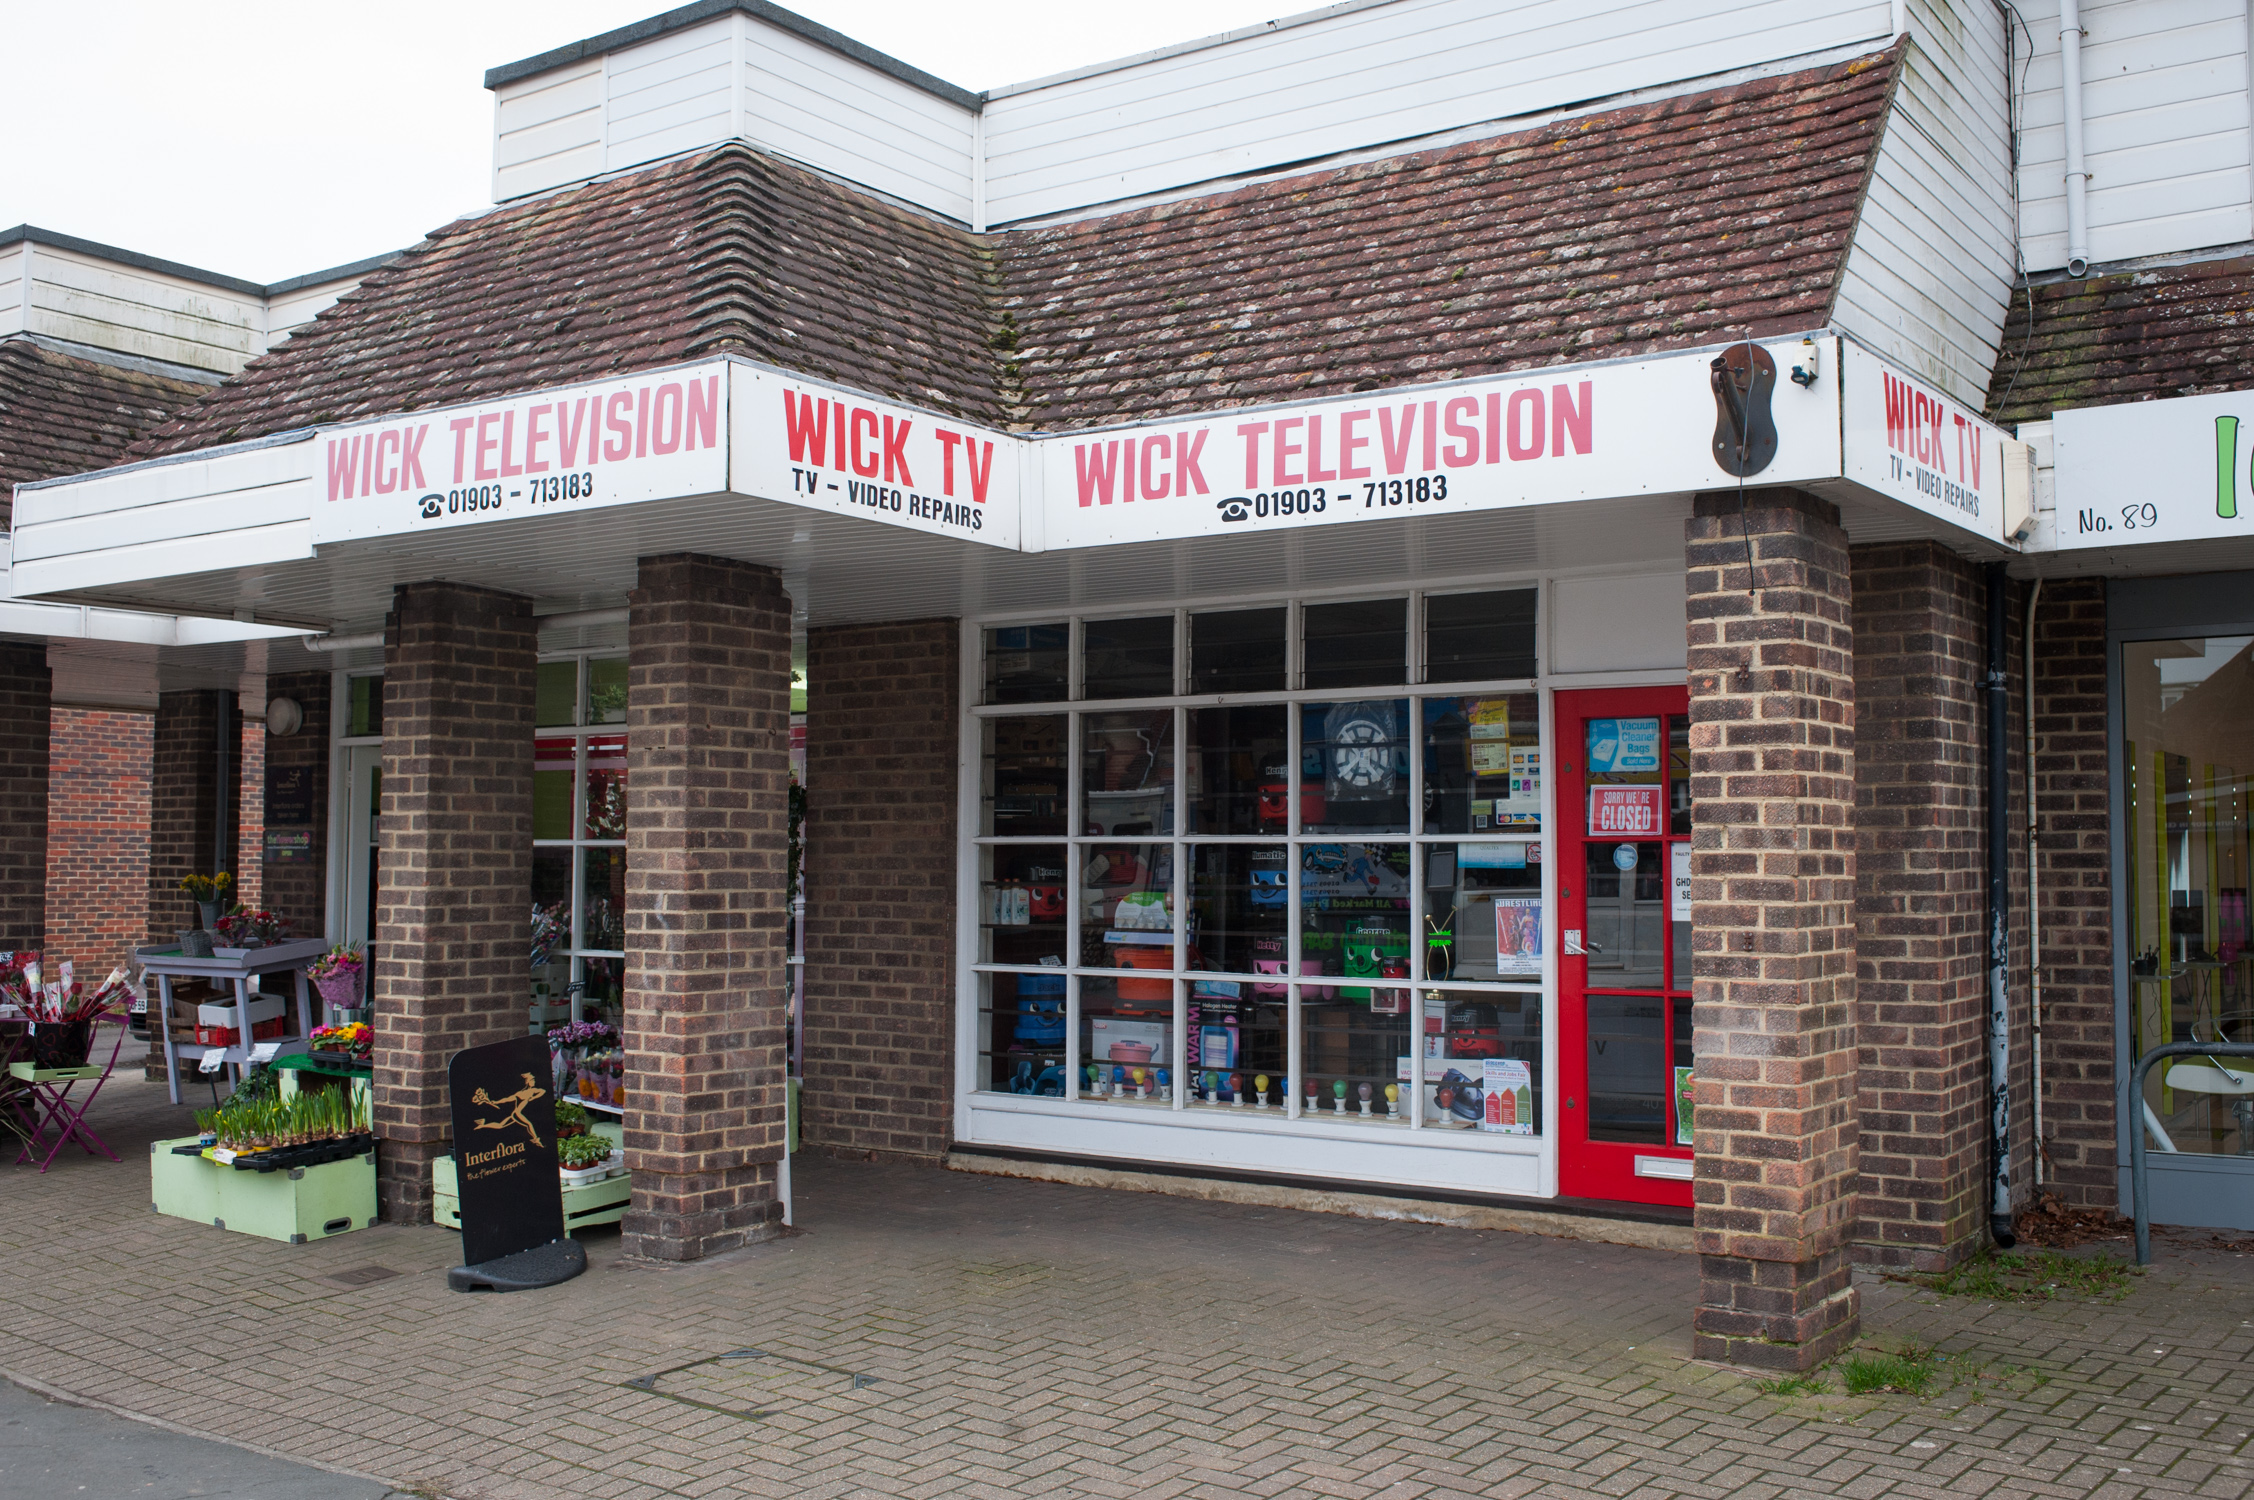 Wick Television